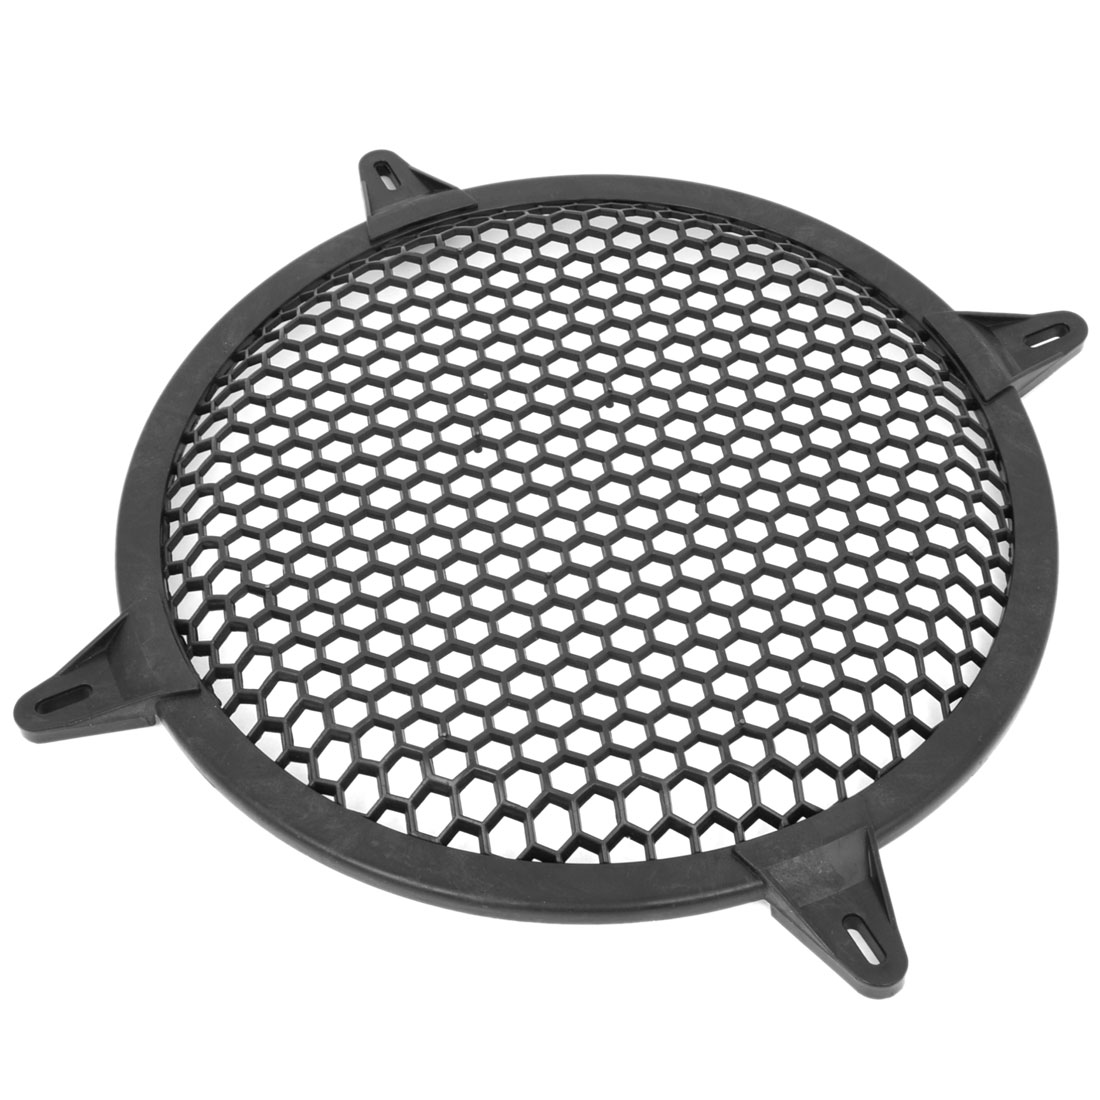 "Black Plastic Mesh Style Round Car Woofer Cover Speaker Grill 12.8"" Dia"